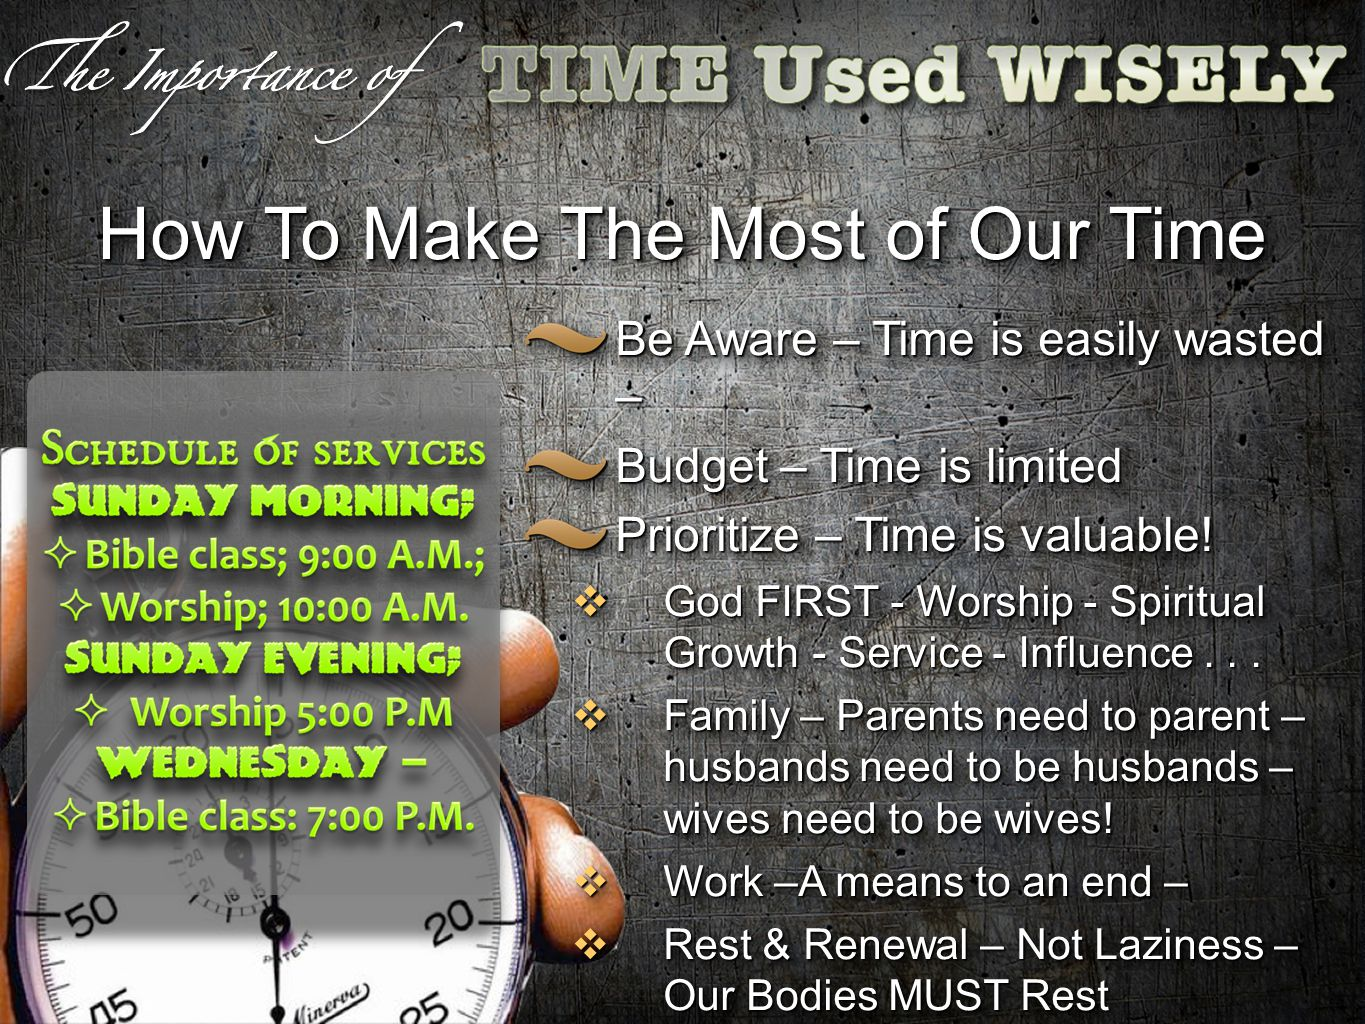 How To Make The Most of Our Time Be Aware – Time is easily wasted – Budget – Time is limited Prioritize – Time is valuable.